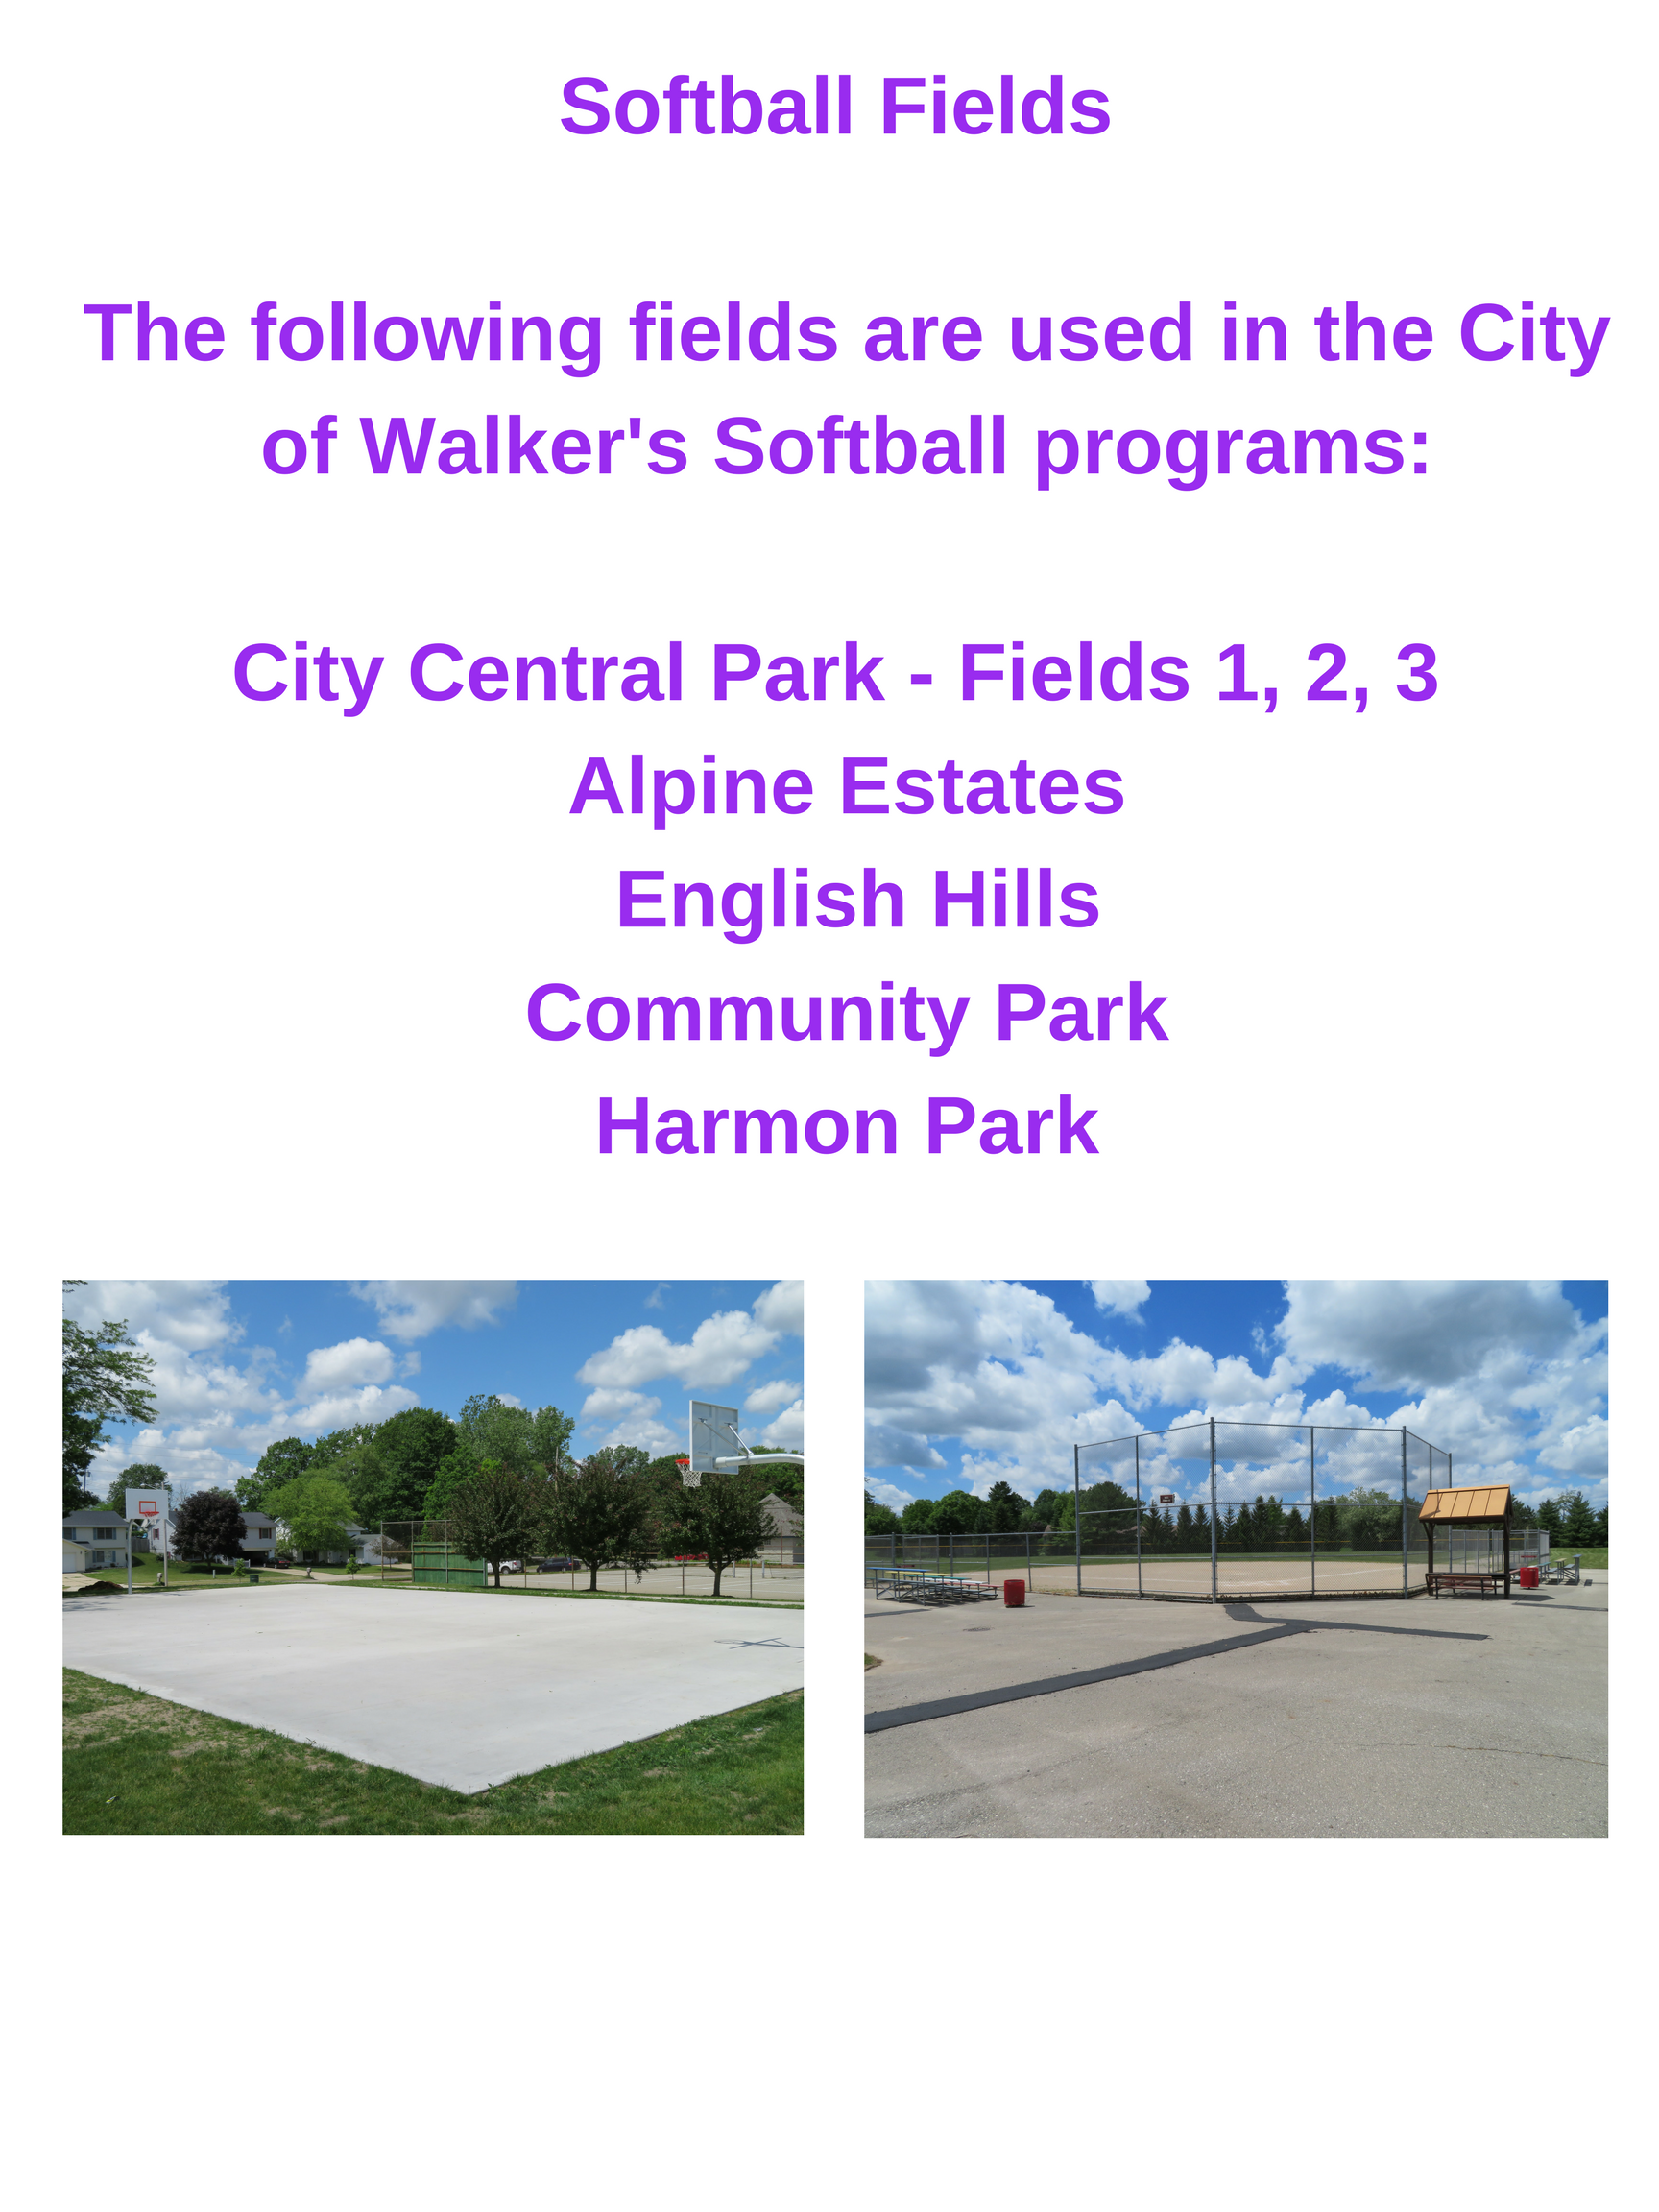 050418 - athletic fields 2